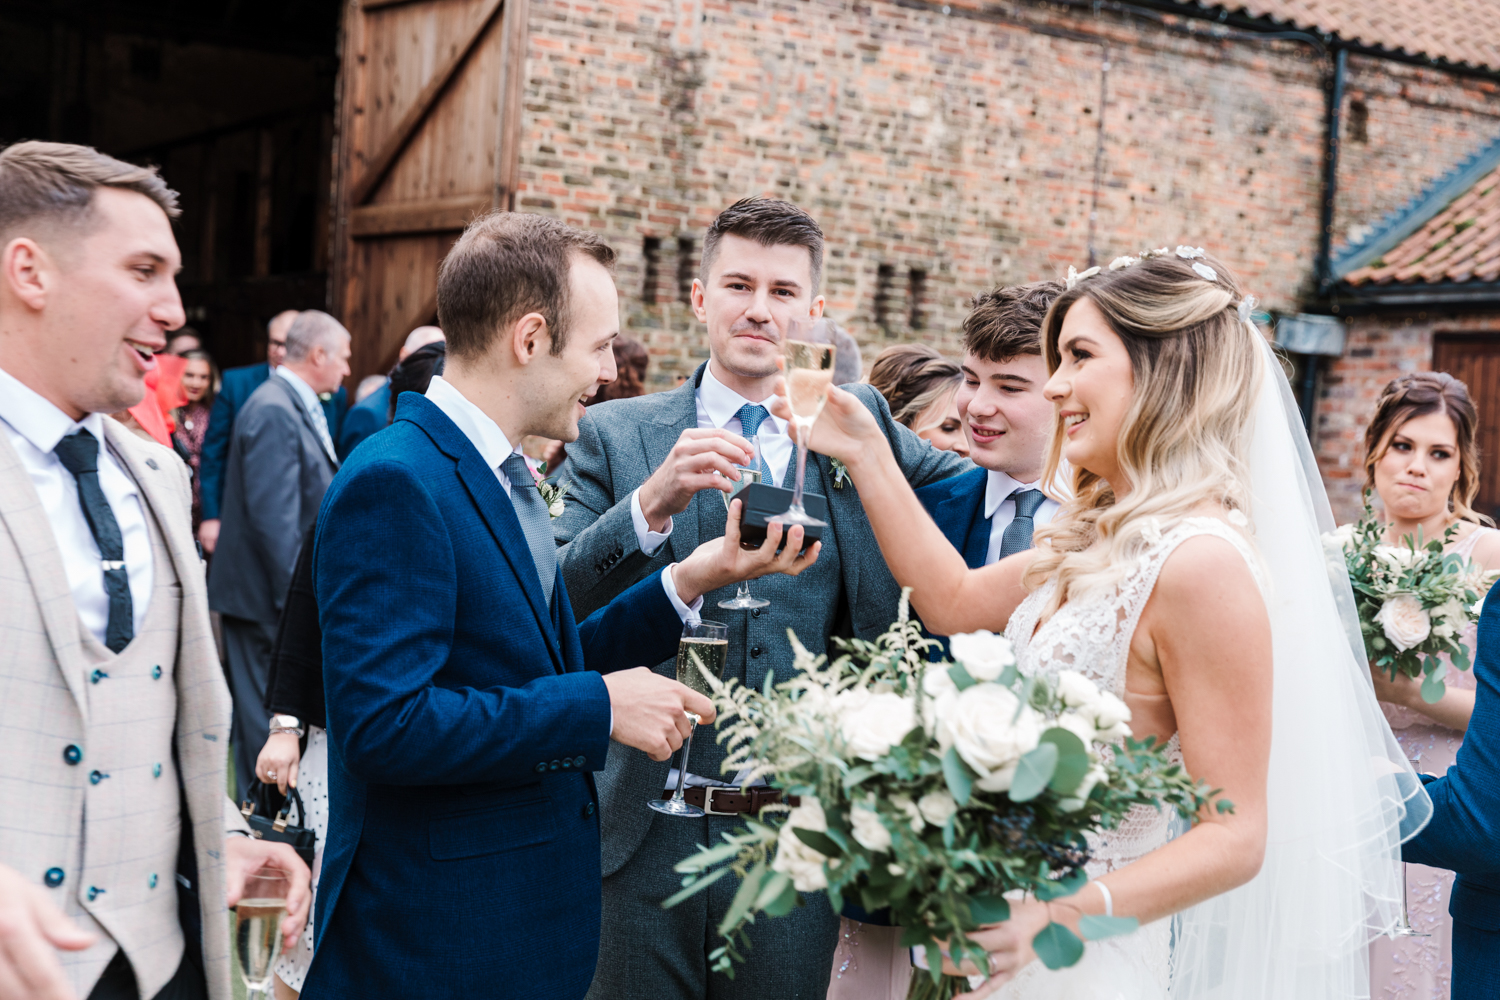 The Normans York Wedding Photographers